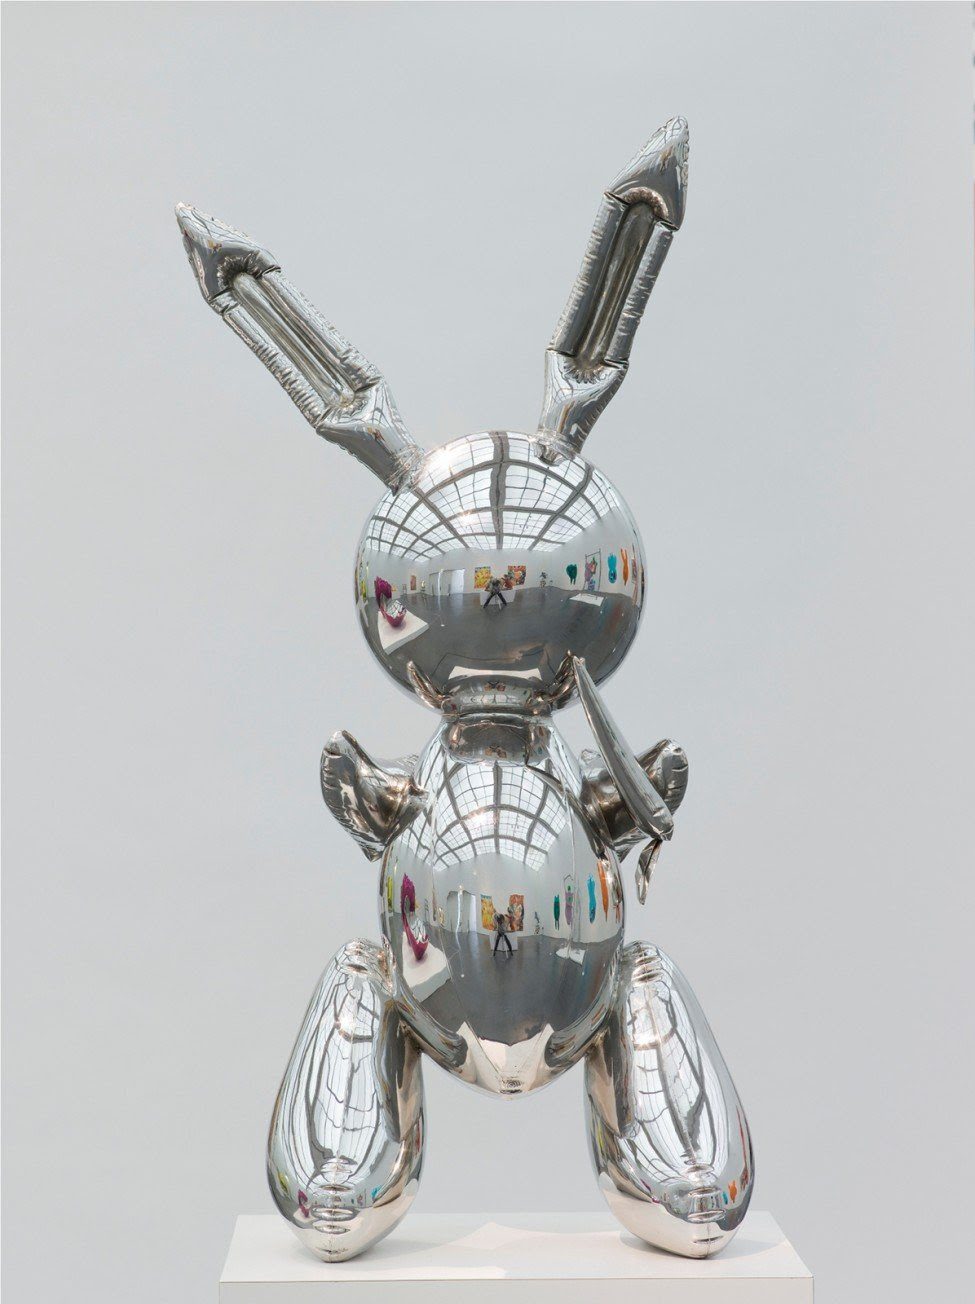 Jeff Koons. Rabbit, 1986. (Photo / Nathan Keay, © MCA Chicago)